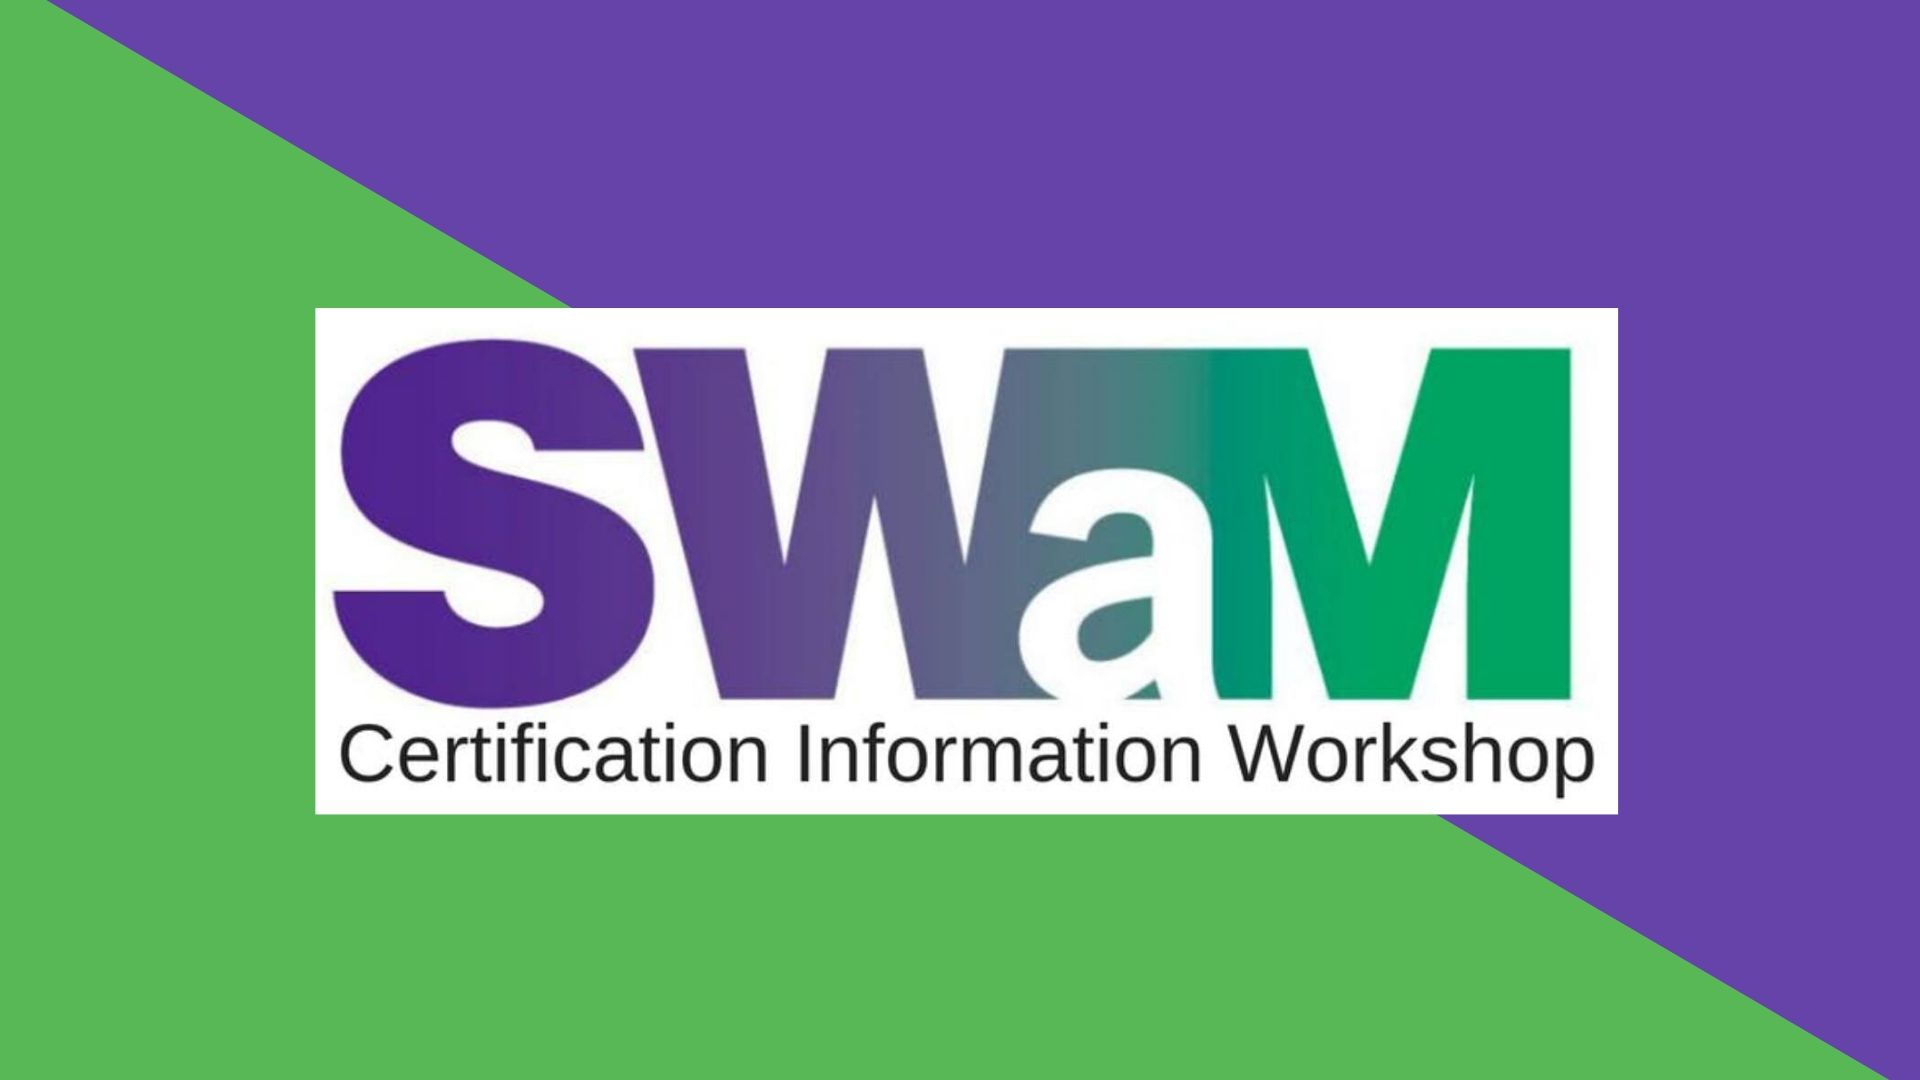 SWaM Certification Information Workshop